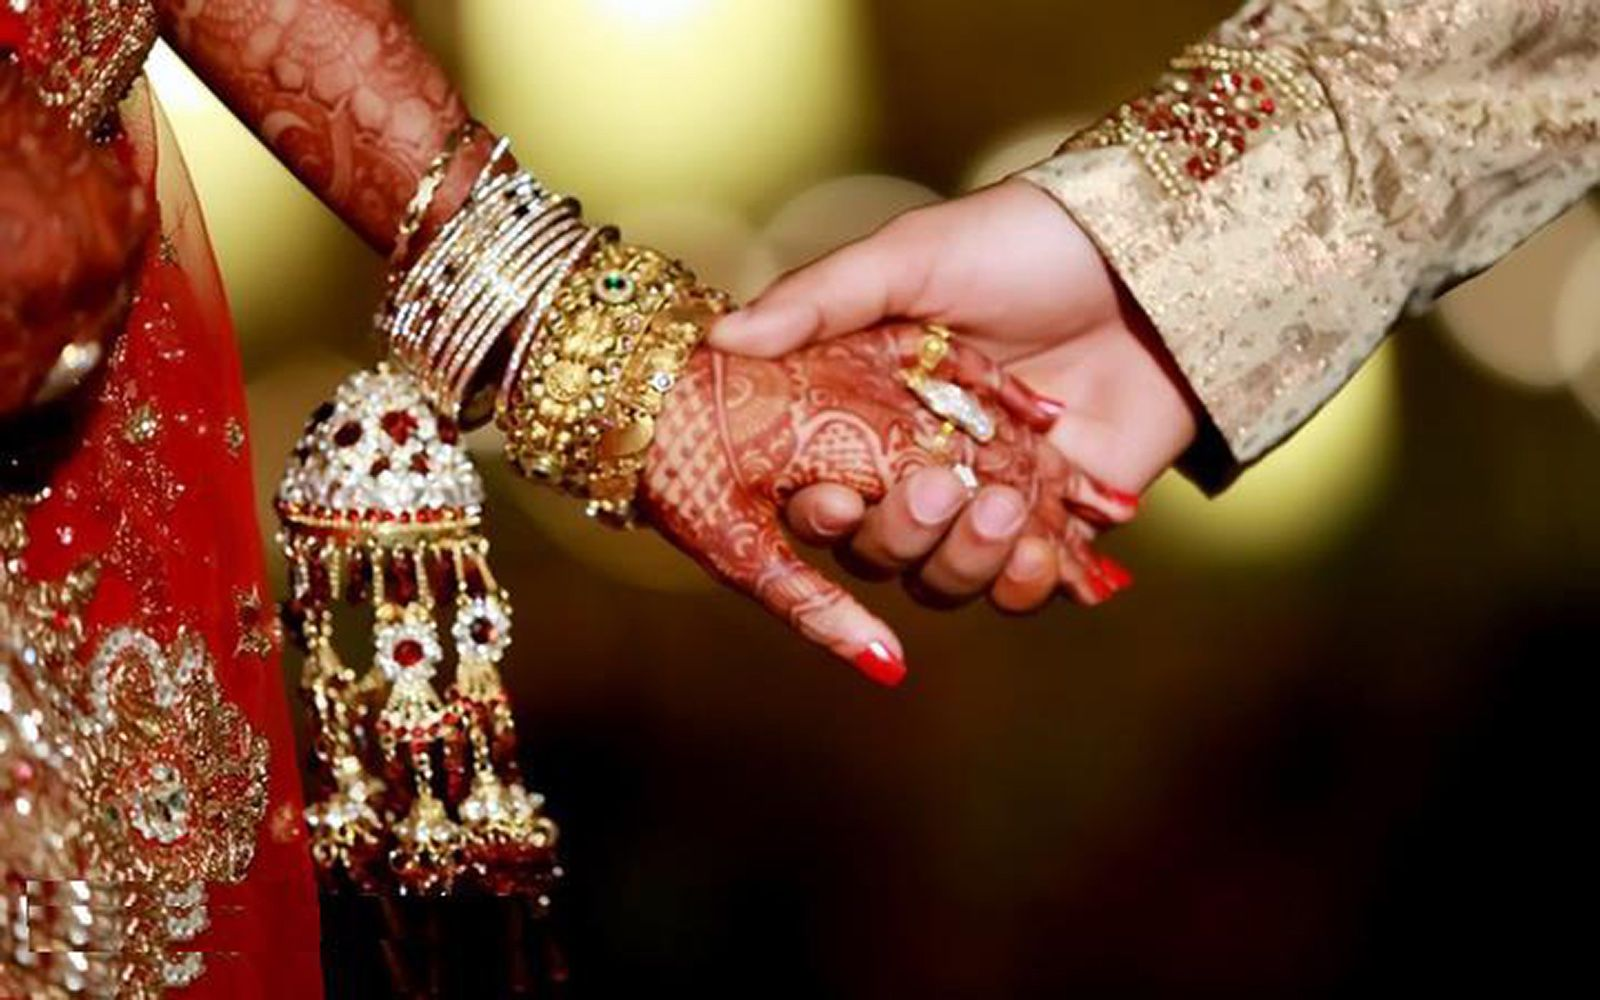 Indian Wedding Couple Wallpaper Hd 448676 Love And Marriage Marriage Problems Marriage Astrology